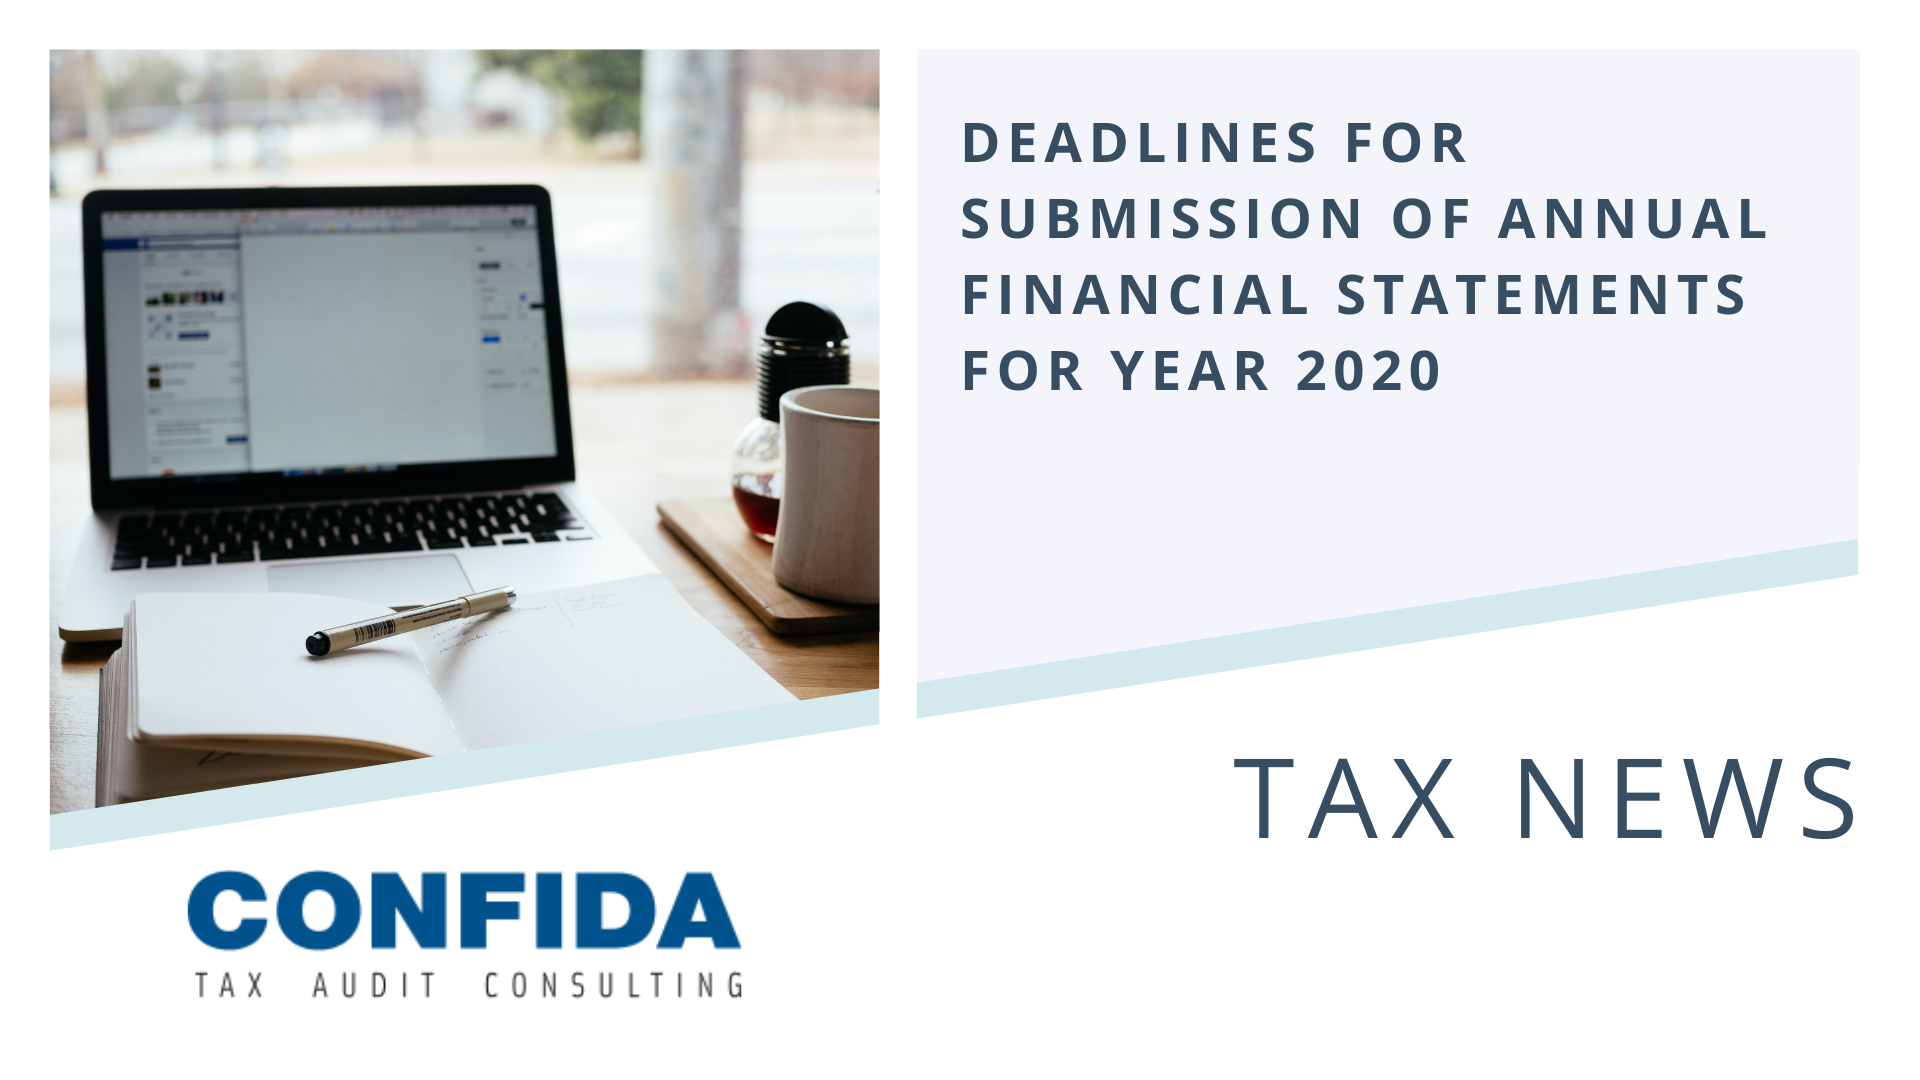 Deadlines for submission of annual financial statements for year 2020